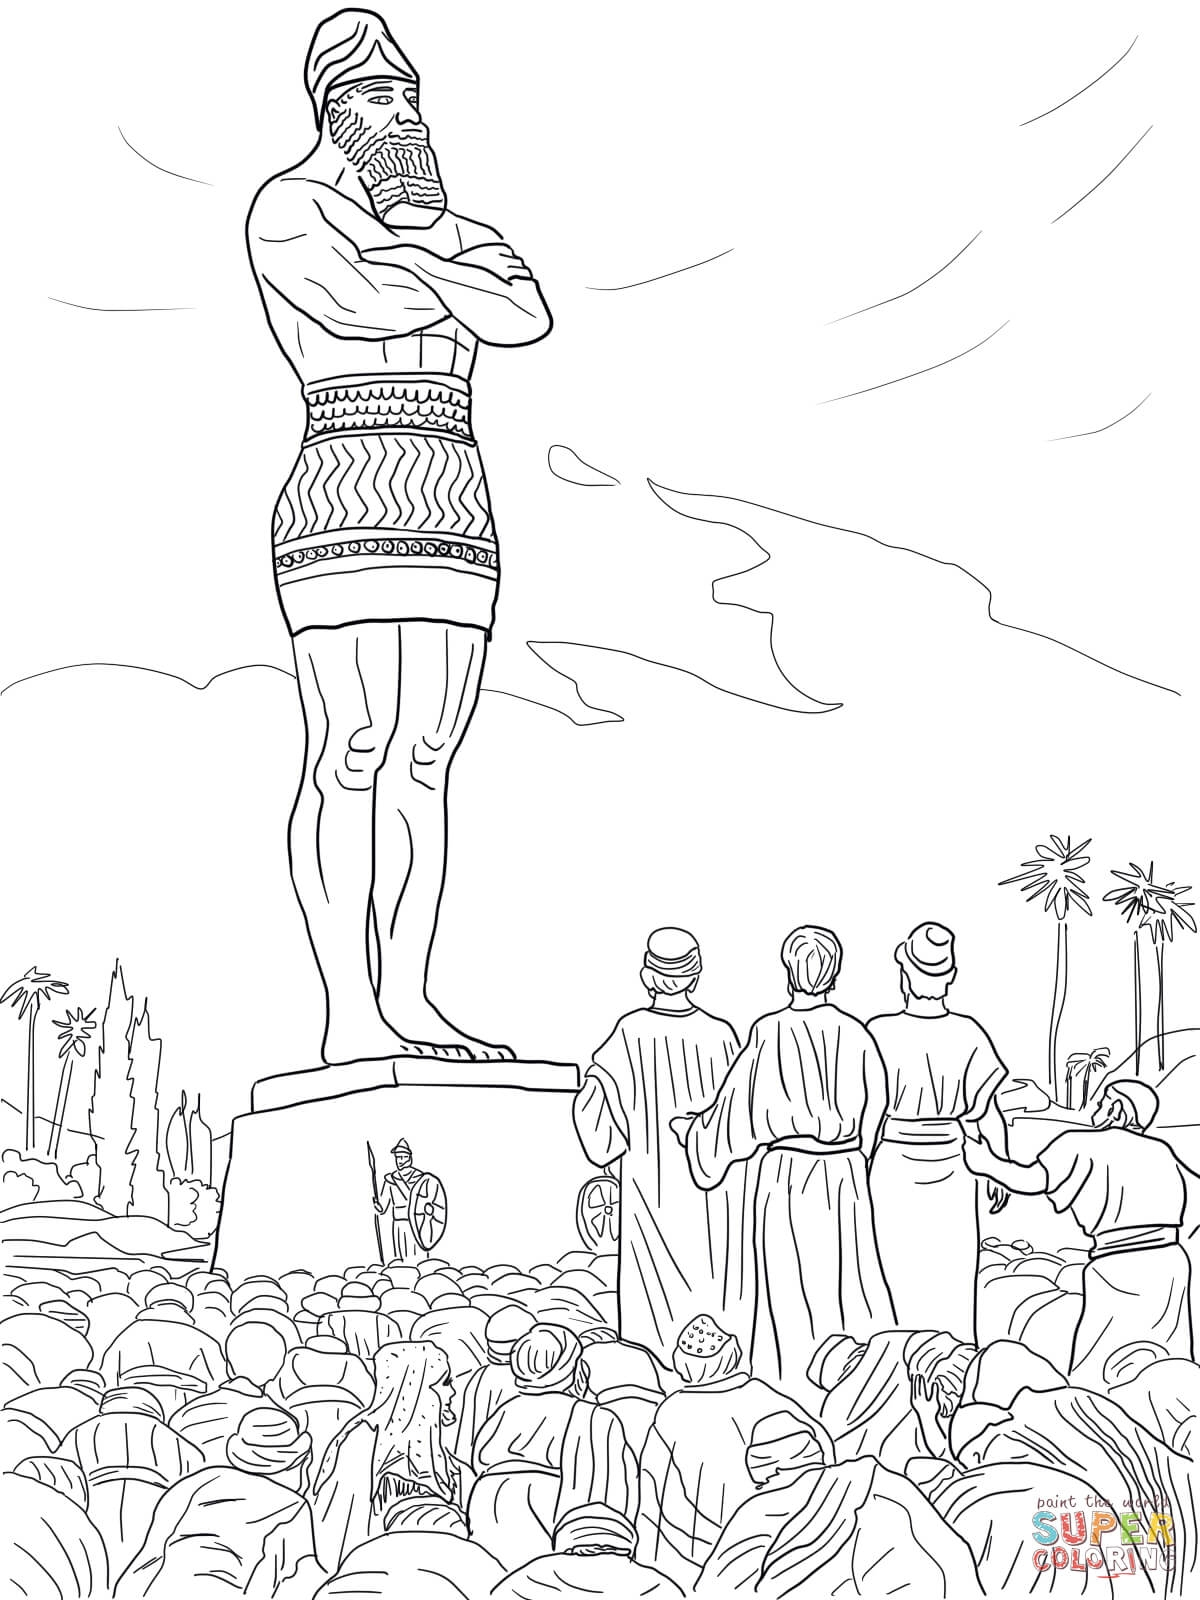 24 Shadrach Meshach And Abednego Coloring Page Pictures